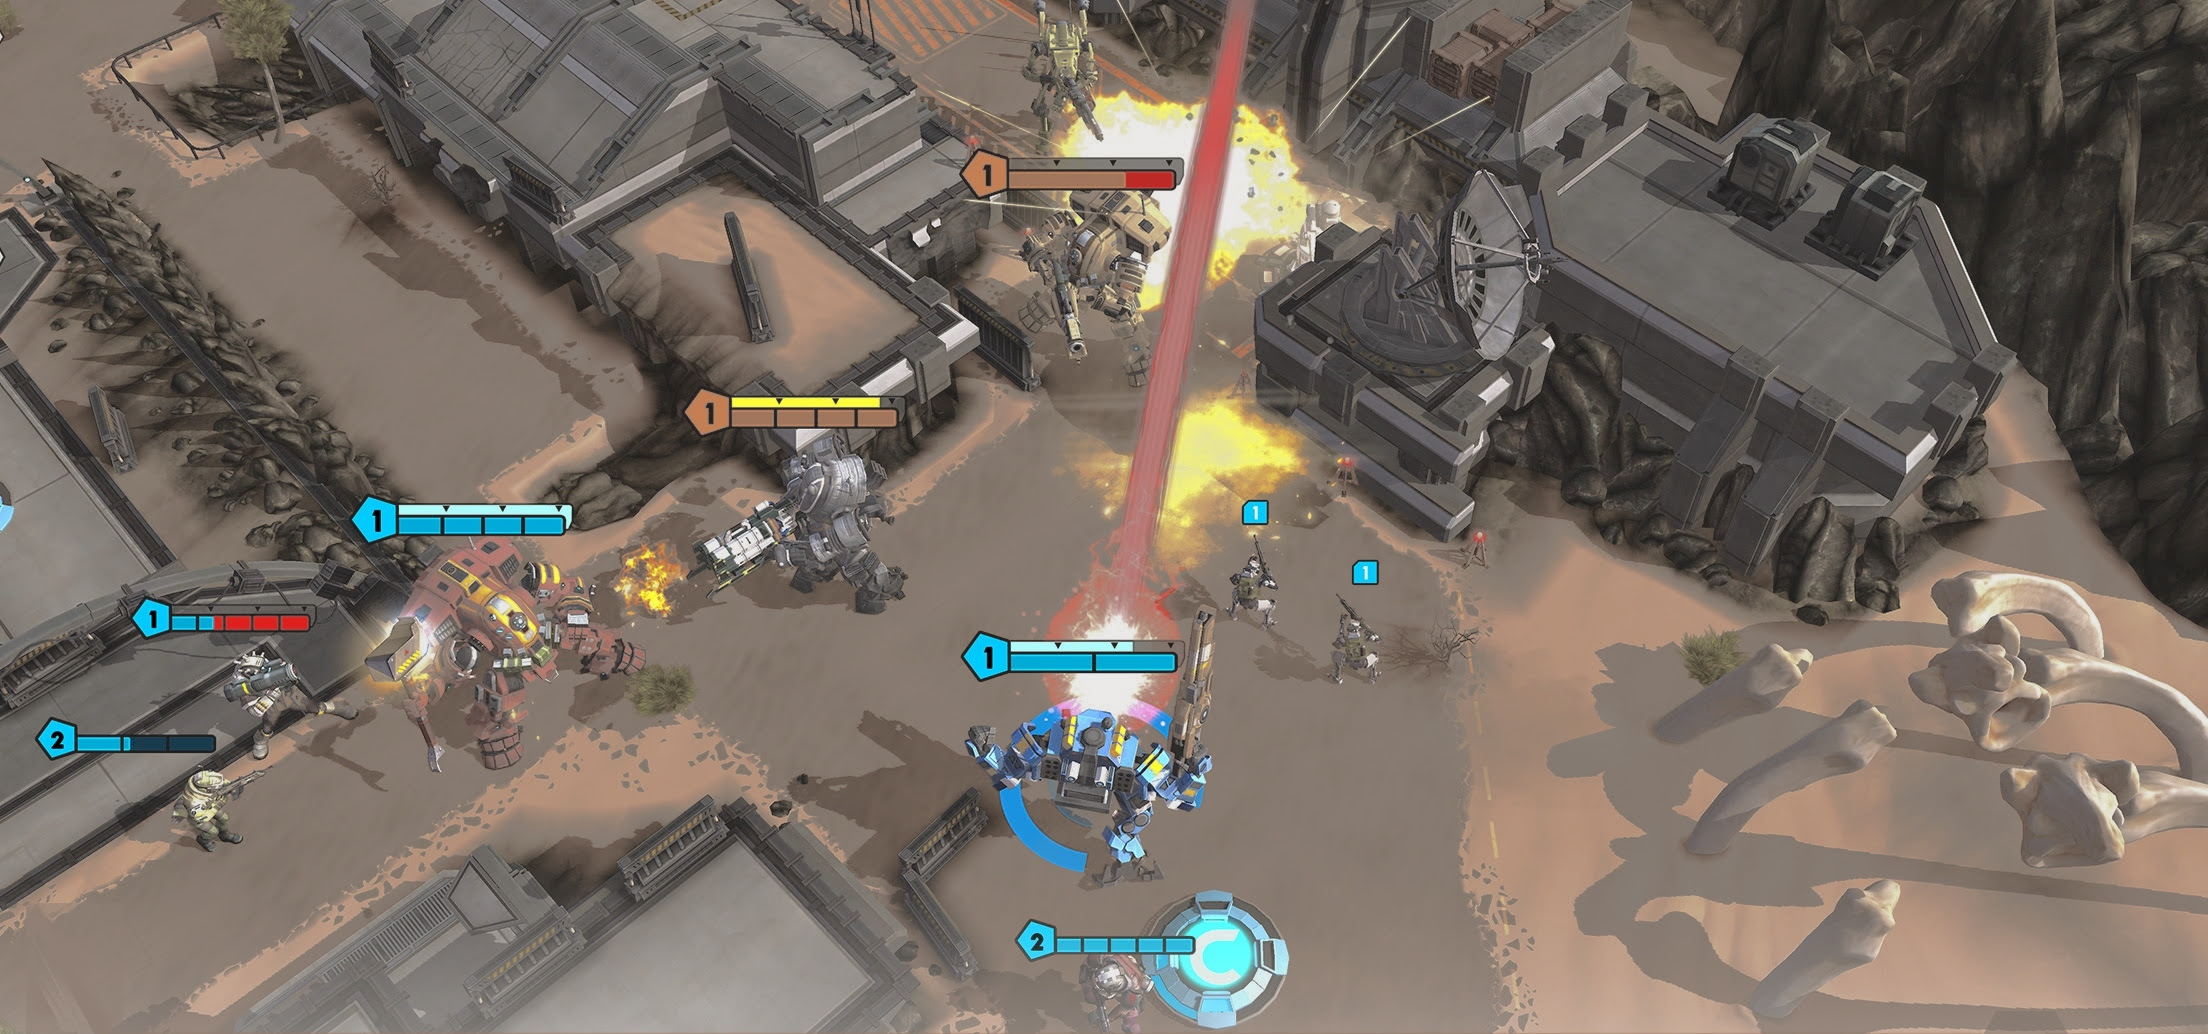 Titanfall: Assault 0.0727.35476 APK for Android